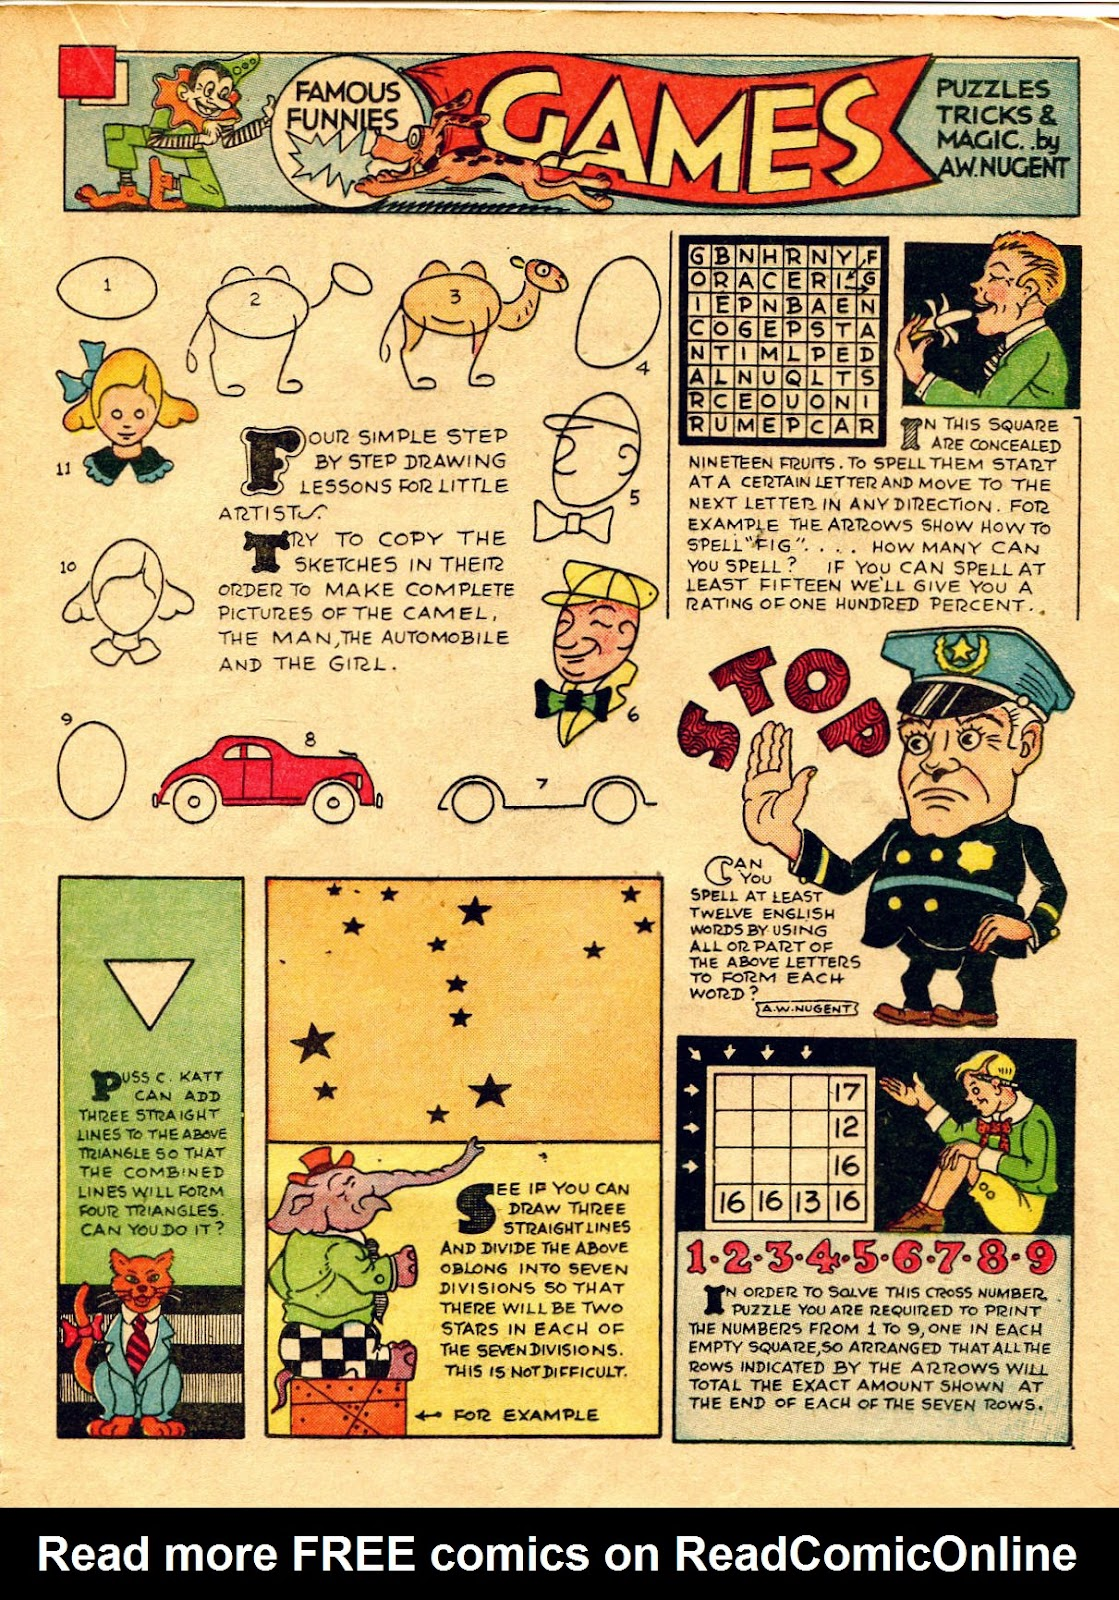 Read online Famous Funnies comic -  Issue #62 - 34